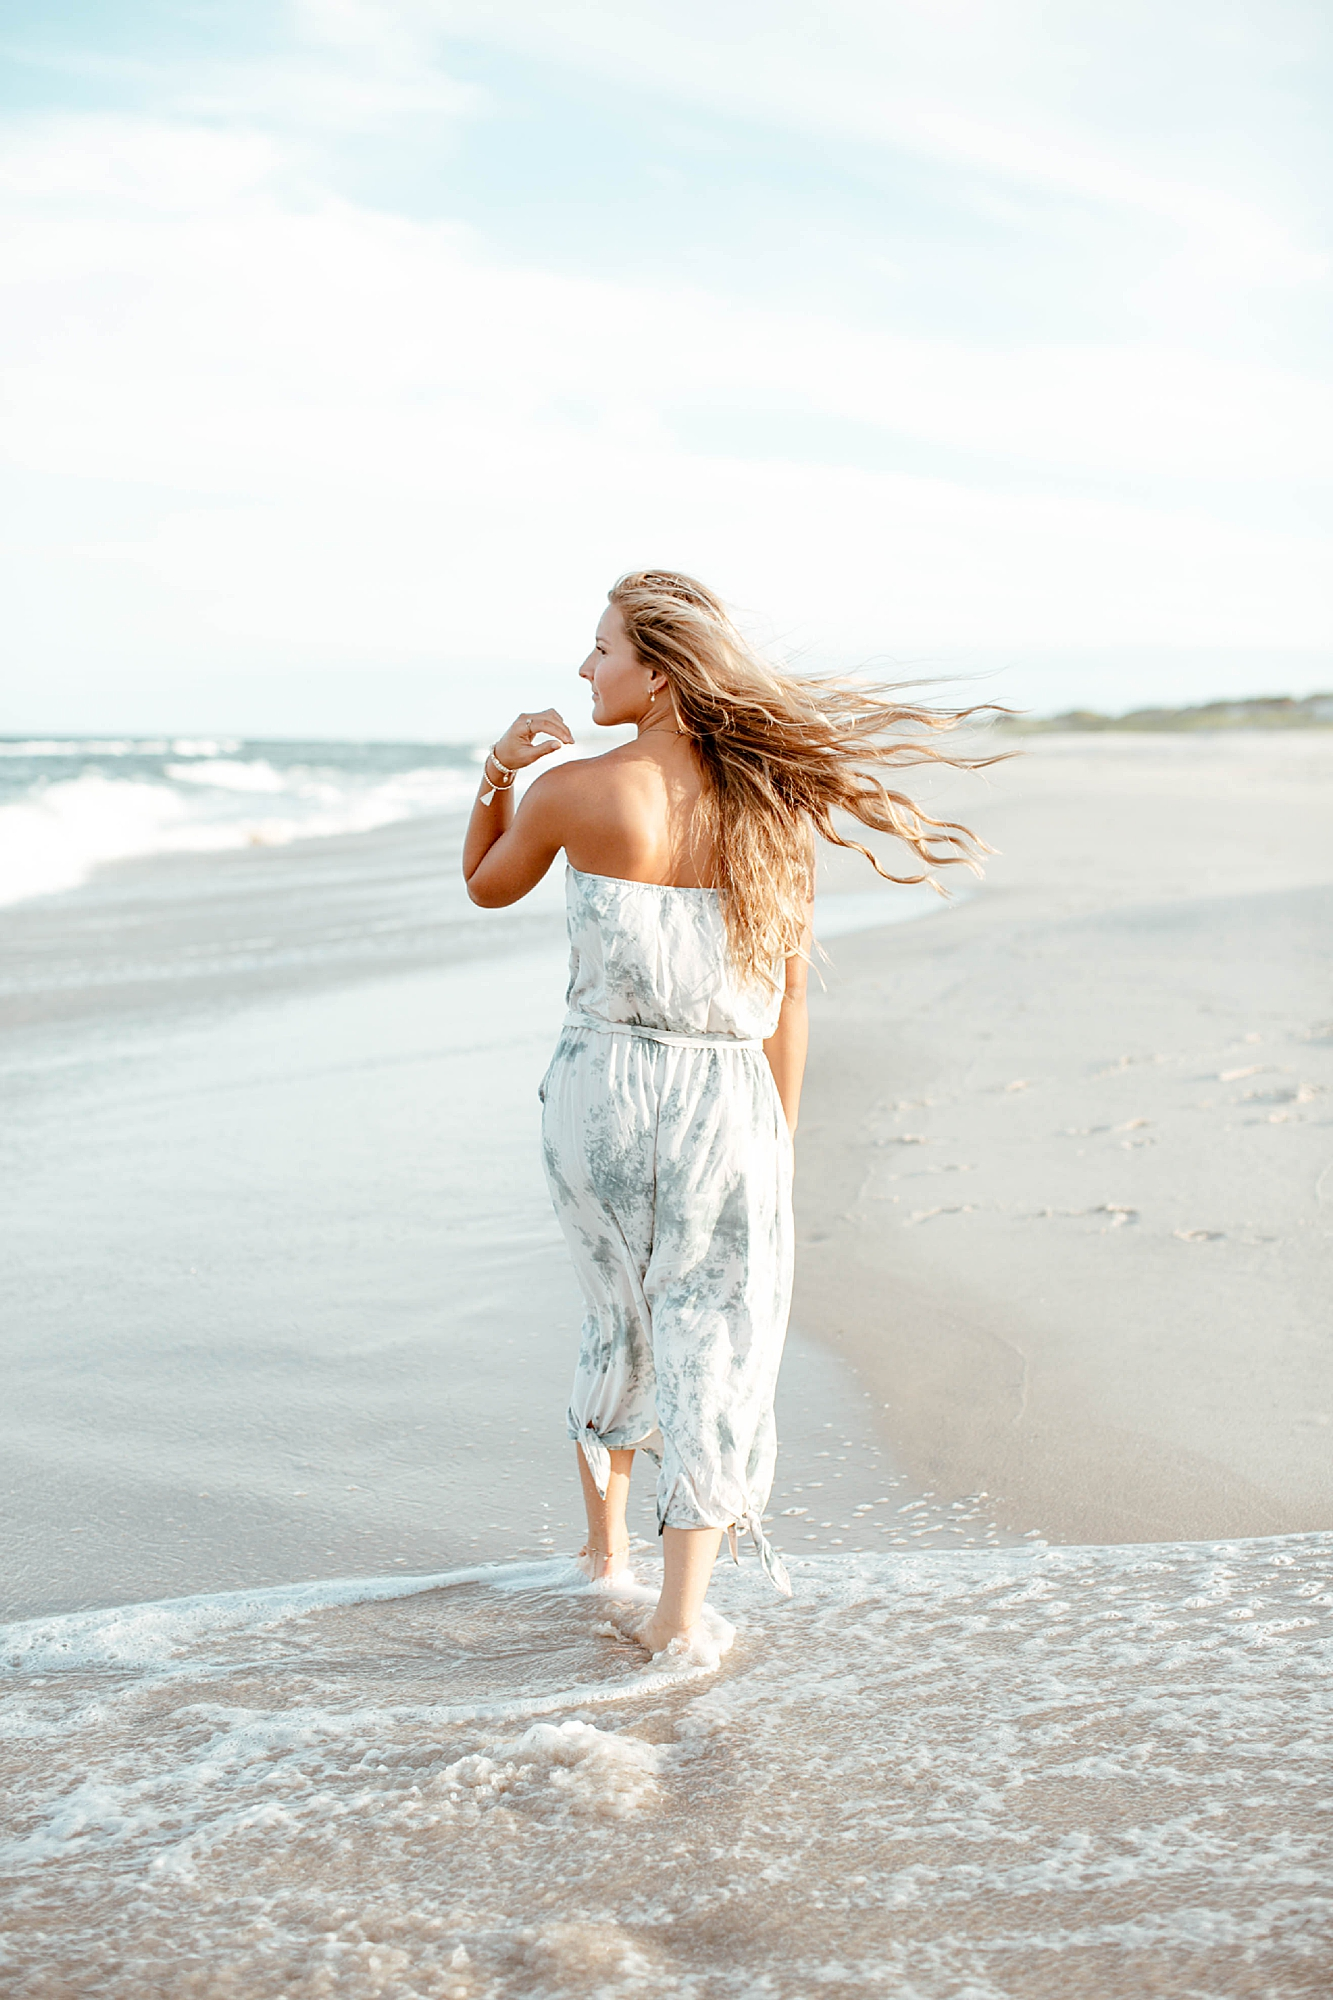 Natural and Bright Seaside Park New Jersey Boho Lifestlyle Beach Portrait Photography by Kelee Bovelle_0013.jpg